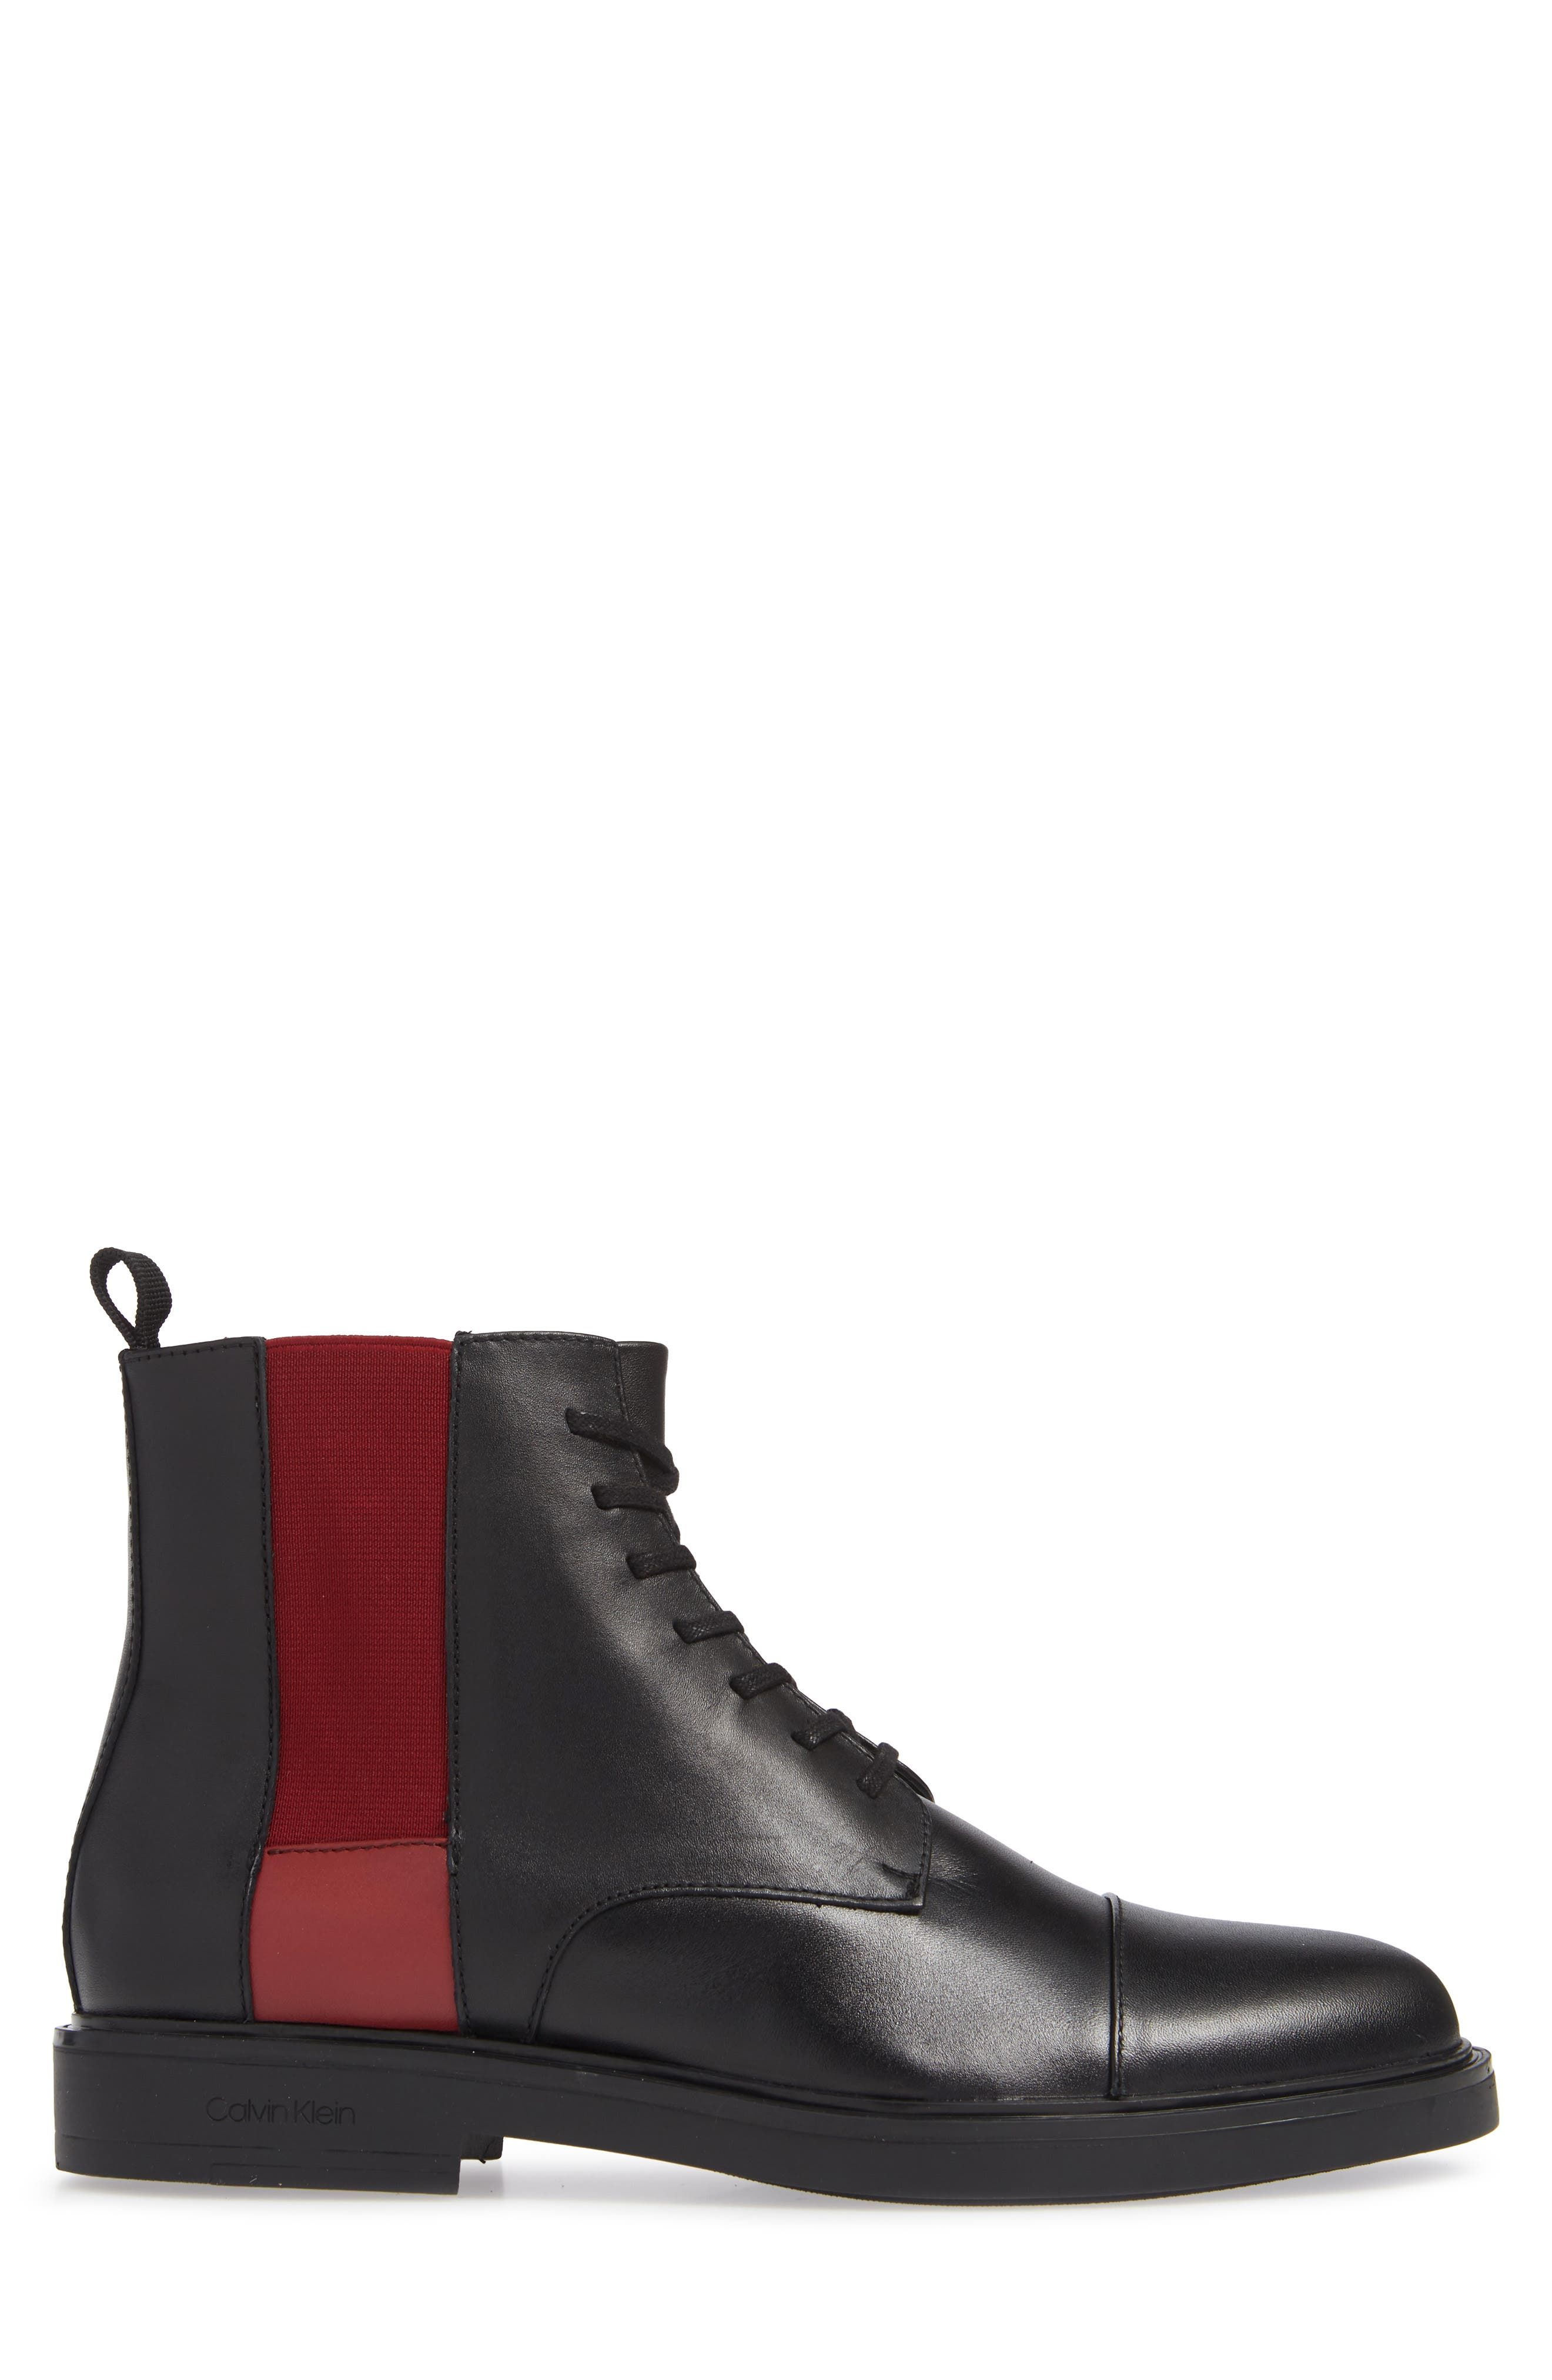 Dameon Lace-Up Boot,                             Alternate thumbnail 3, color,                             BLACK/ RED ROCK LEATHER